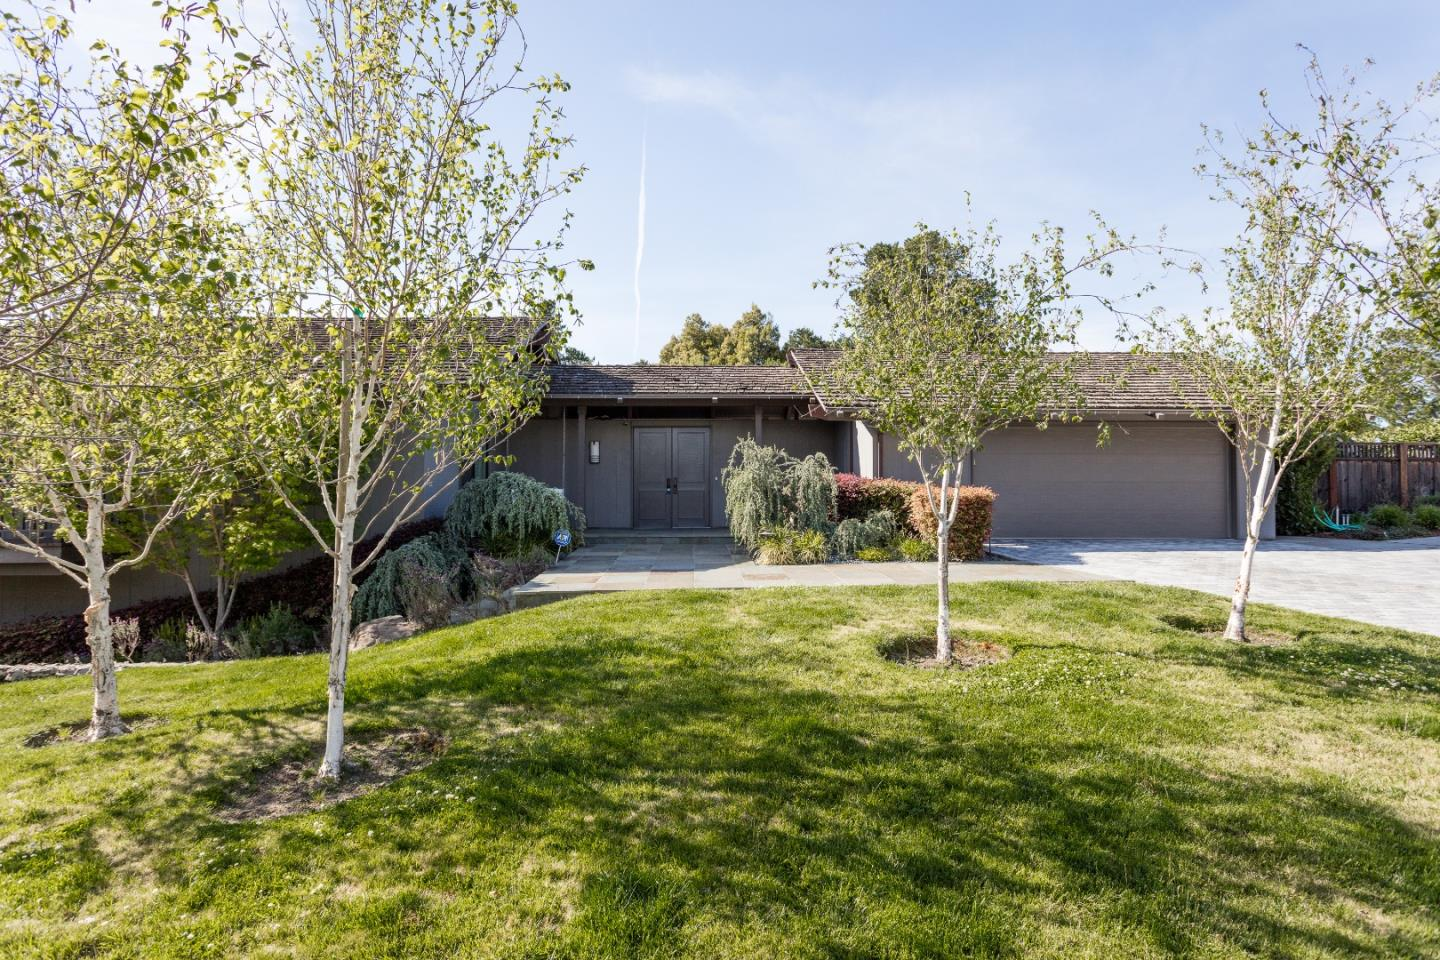 300 Sierra DR, Hillsborough, California